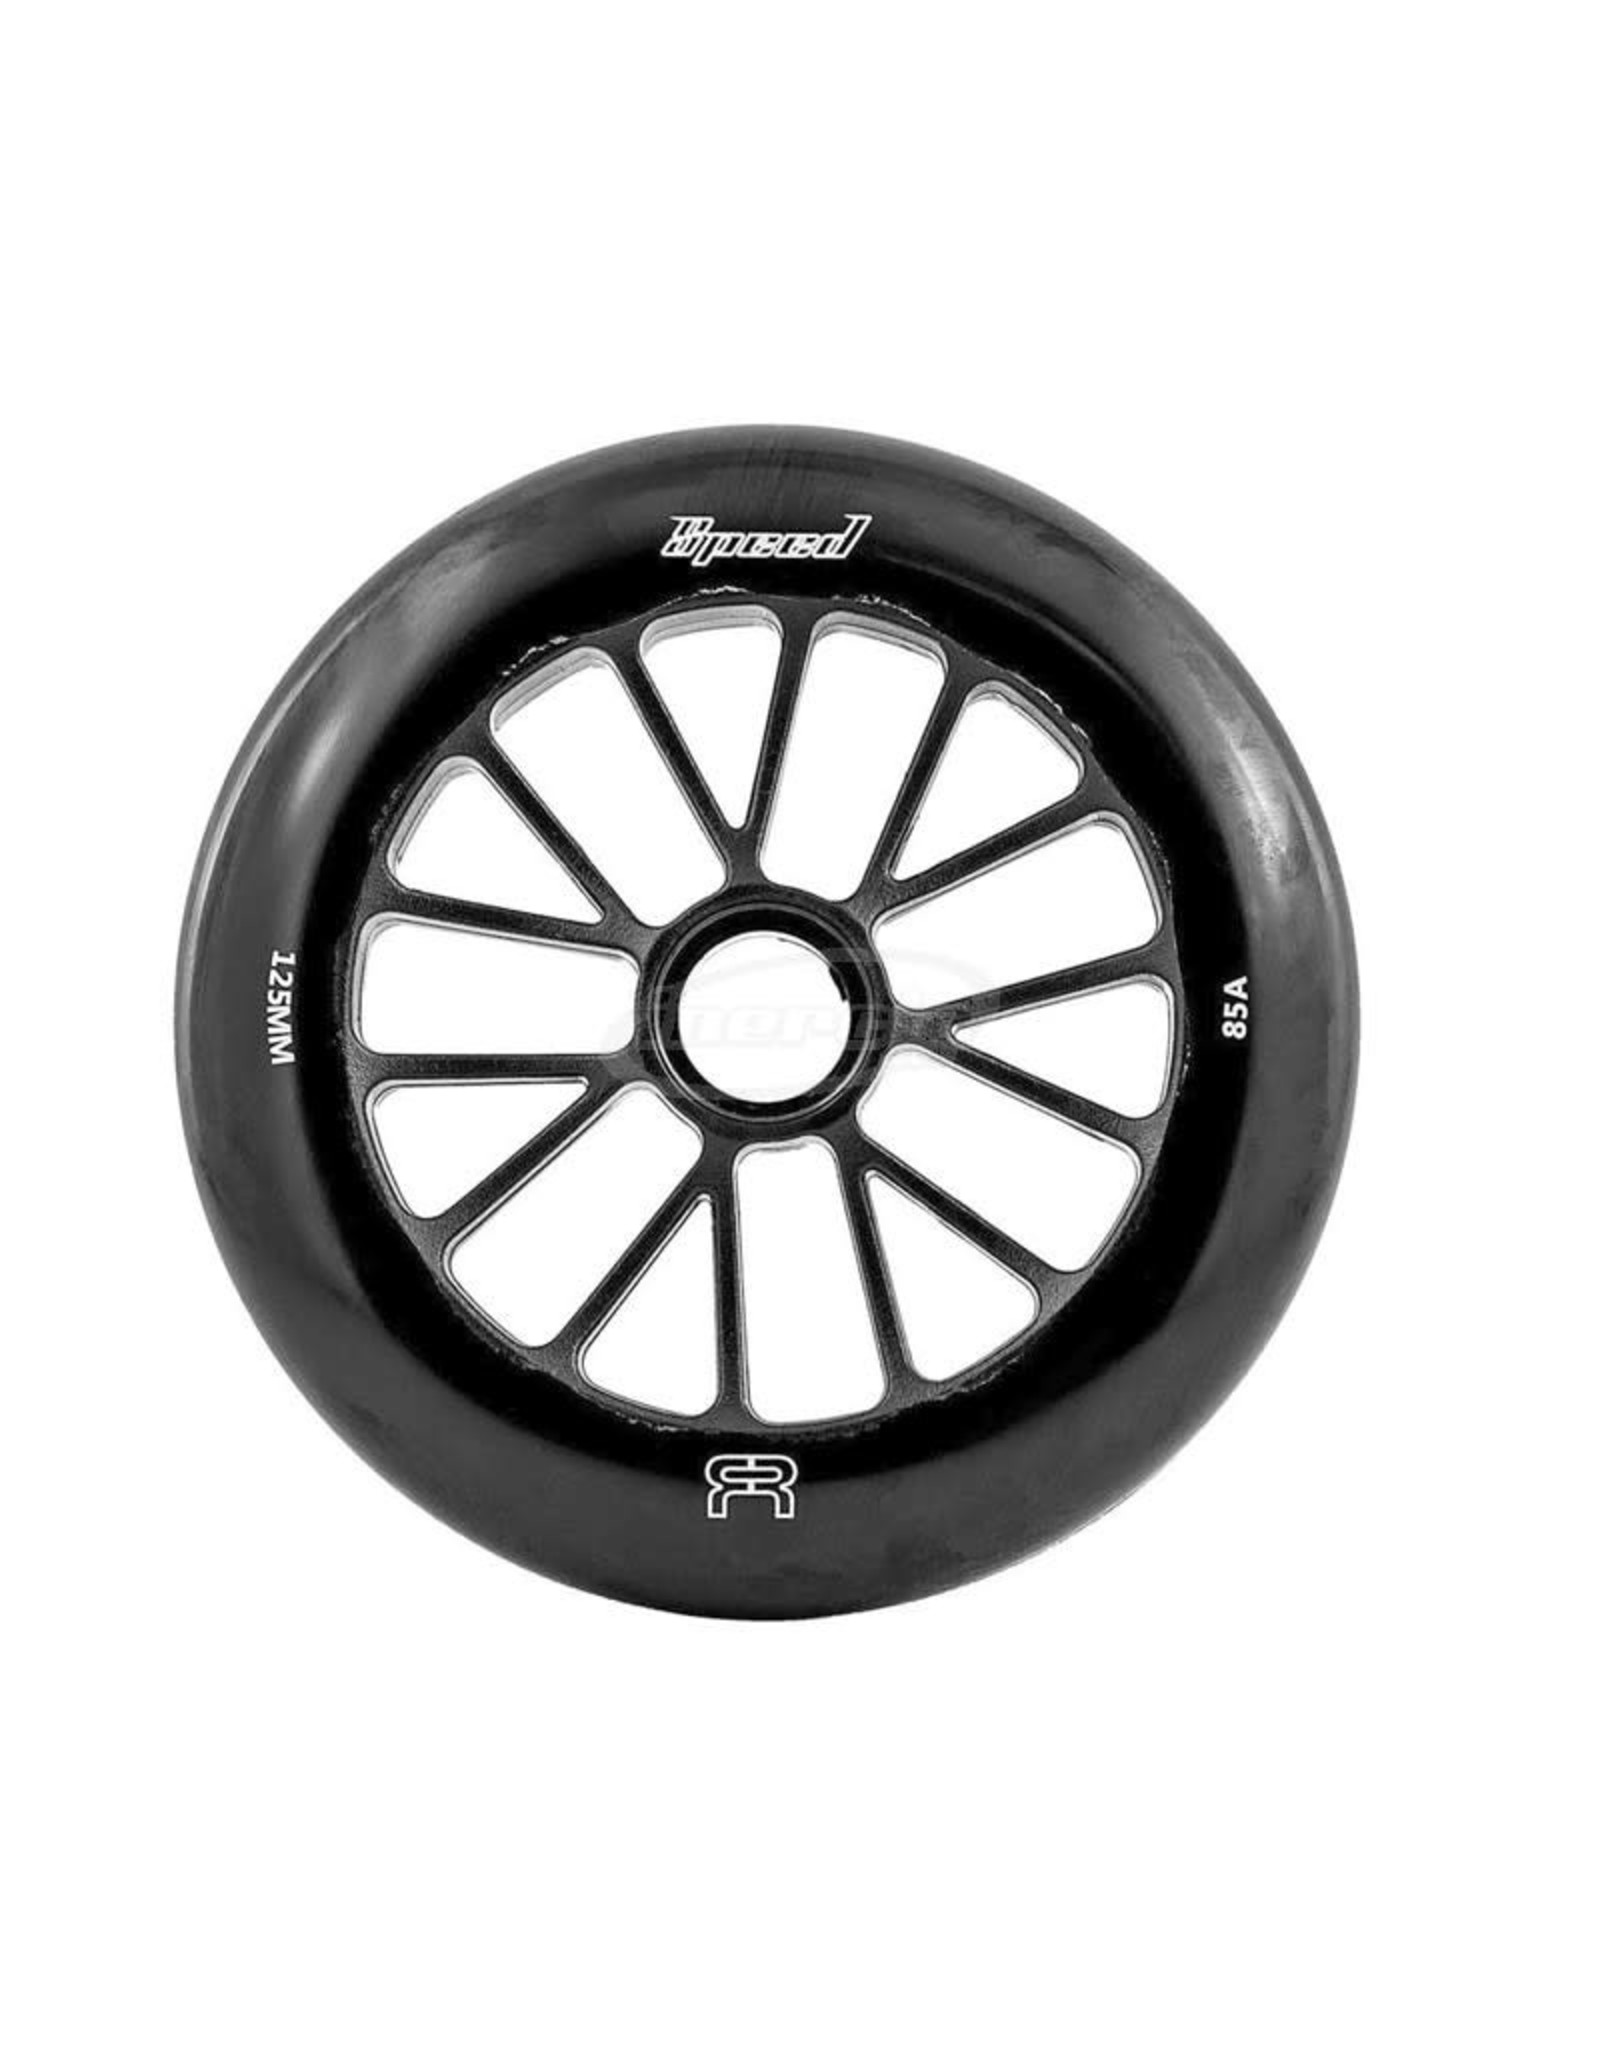 FR FR Speed wheels 125mm (1 pc)